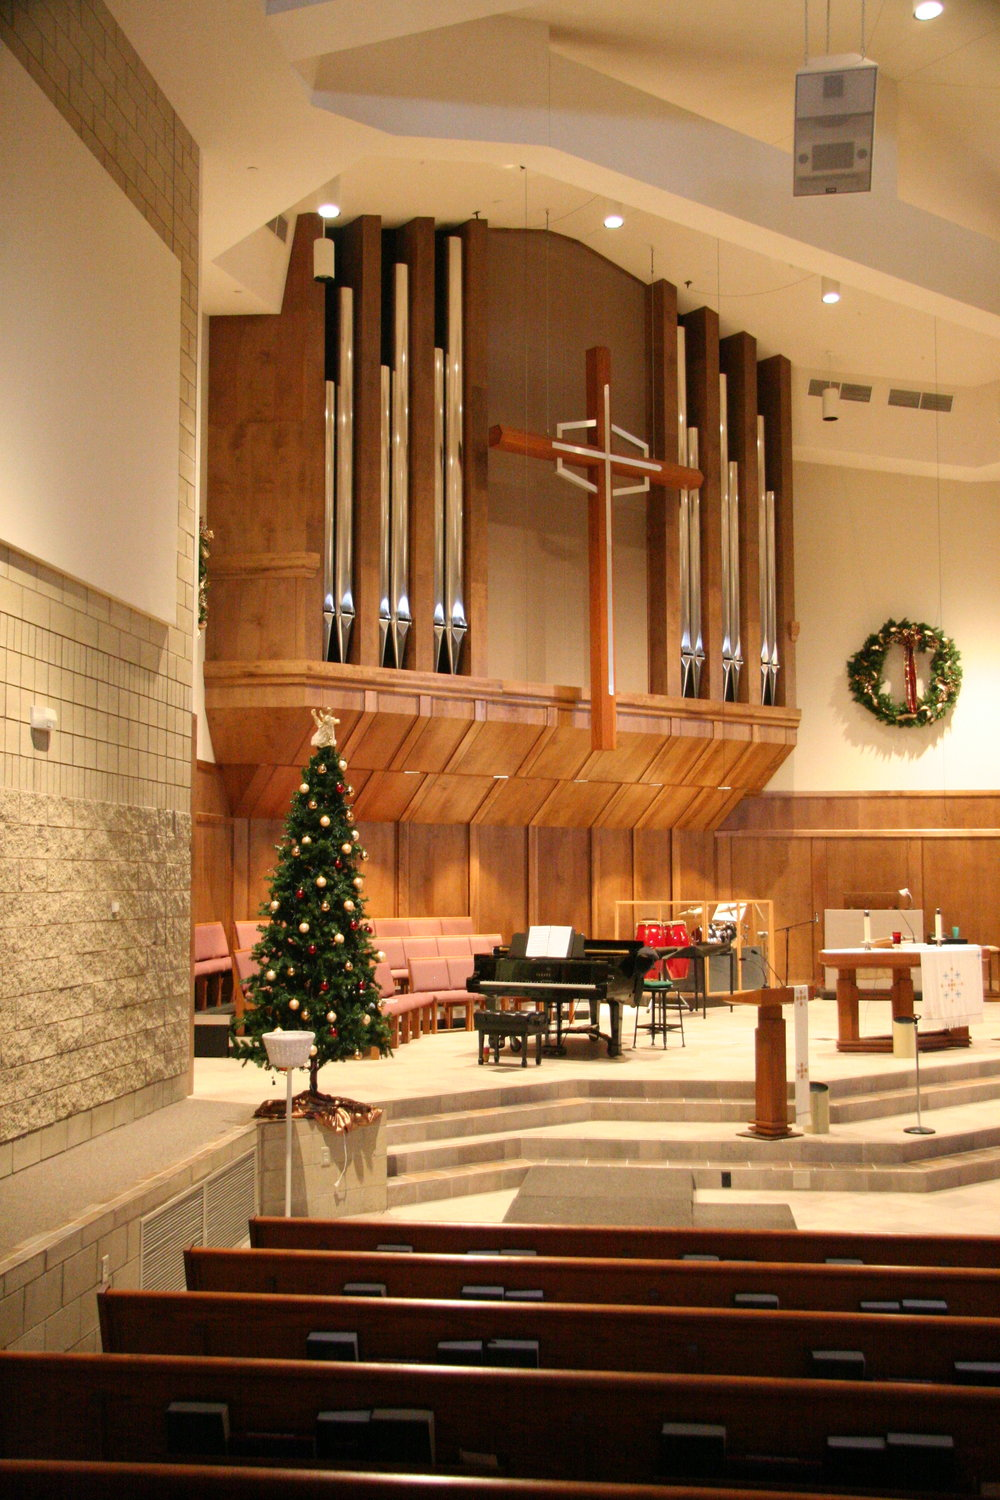 Community Of The Cross Lutheran Church - Bloomington, Minn.